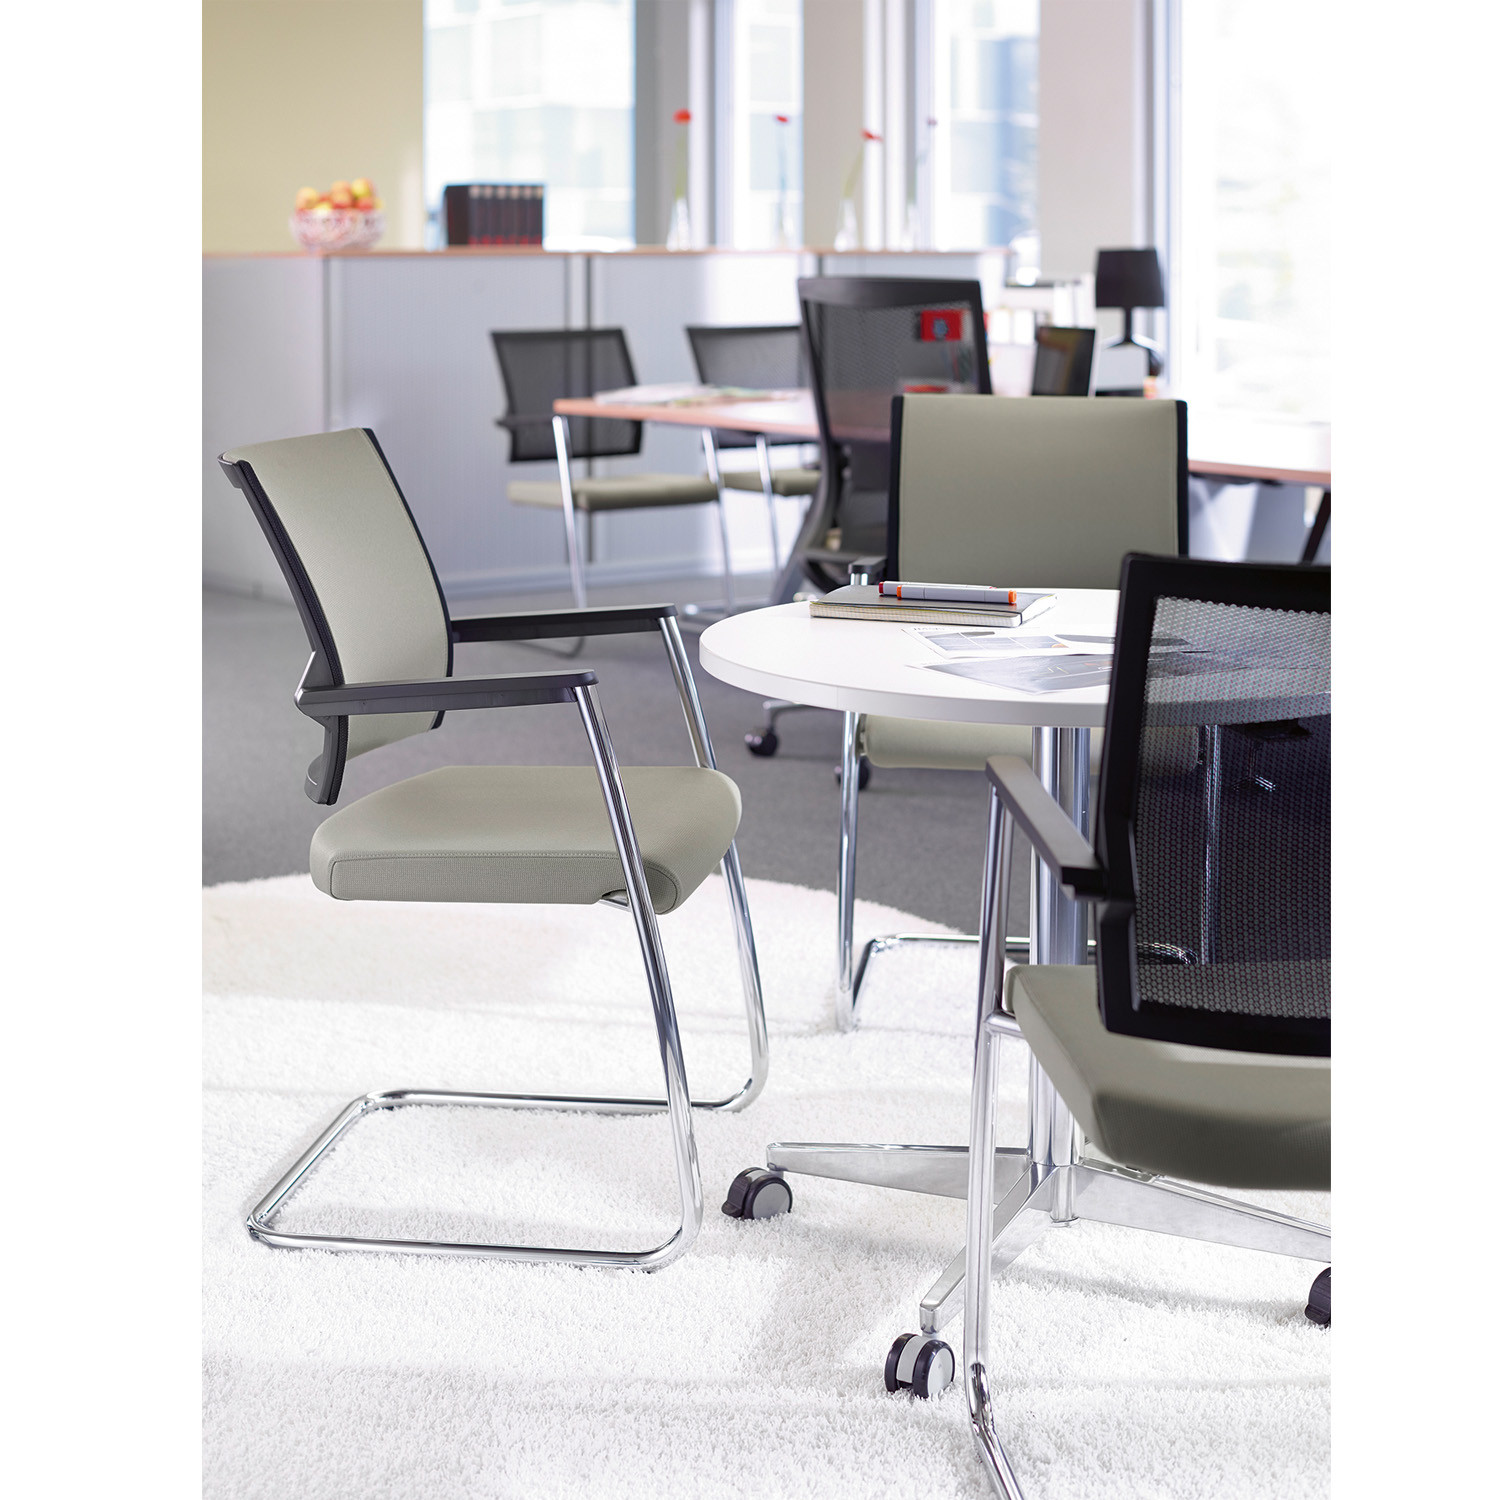 Duera Cantilever Office Chairs from Klober